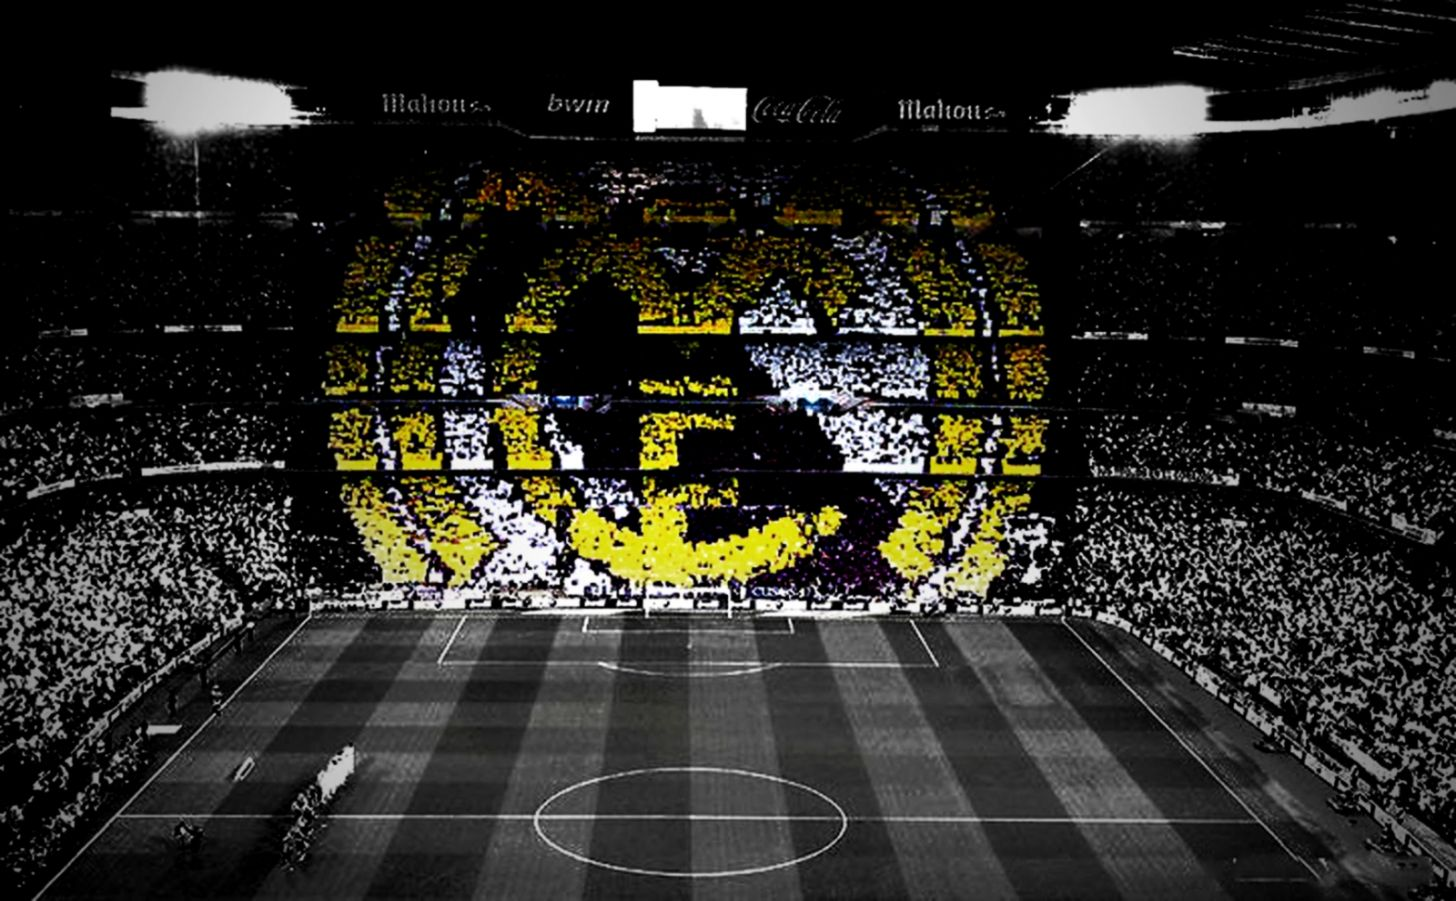 Wallpaper Hd 1080p Real Madrid Wallpaperes Elite